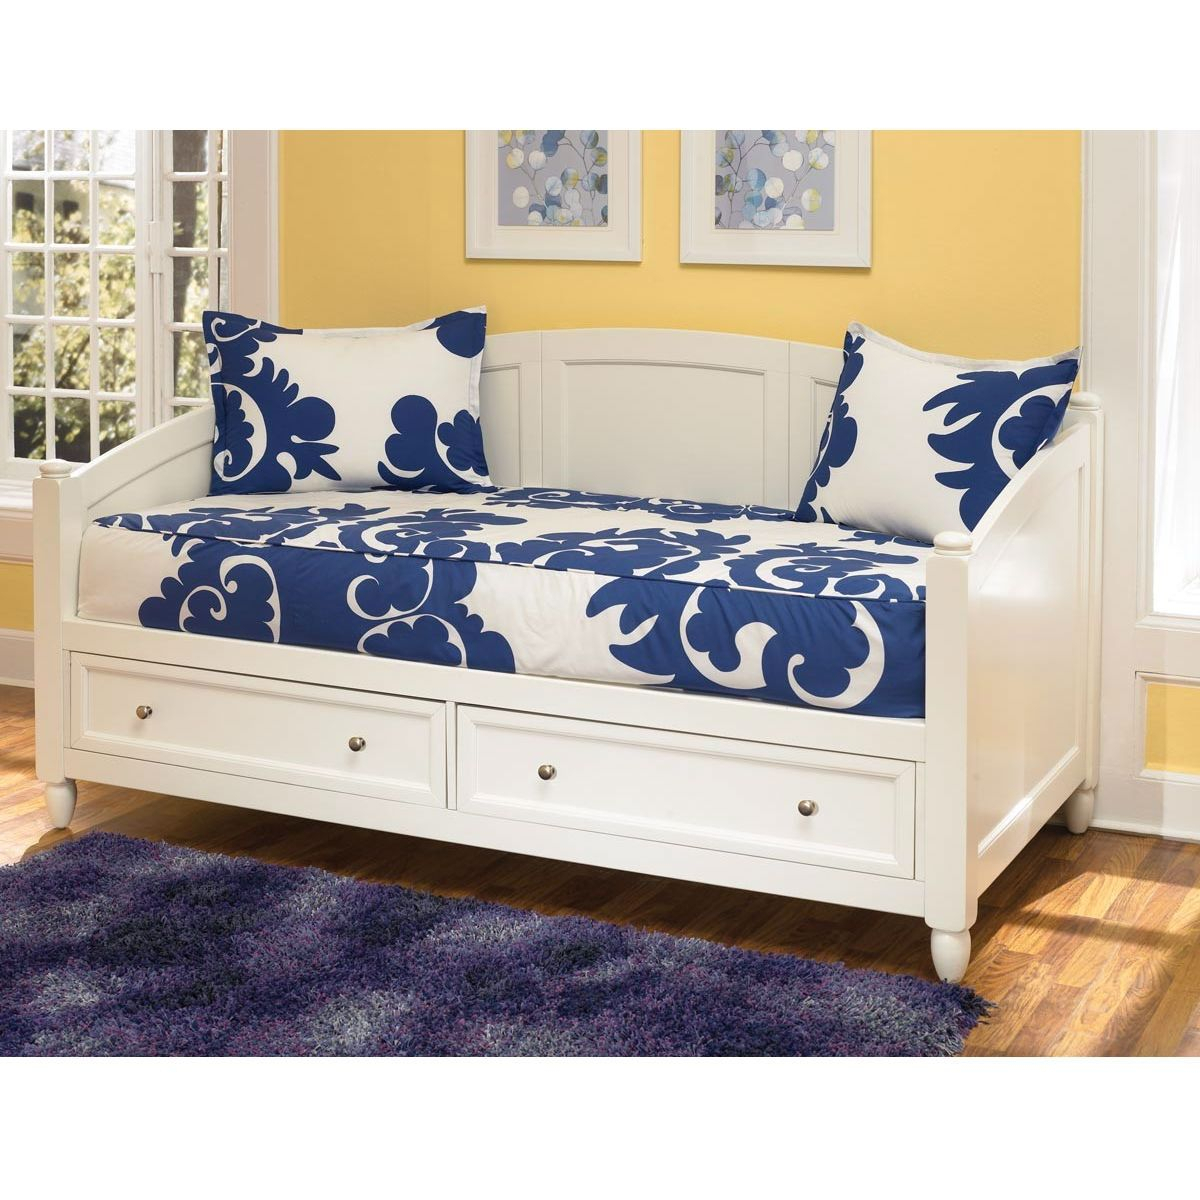 Twin Size Contemporary White Wood Daybed With 2 Storage Regarding Twin Nancy Sectional Sofa Beds With Storage (View 11 of 15)